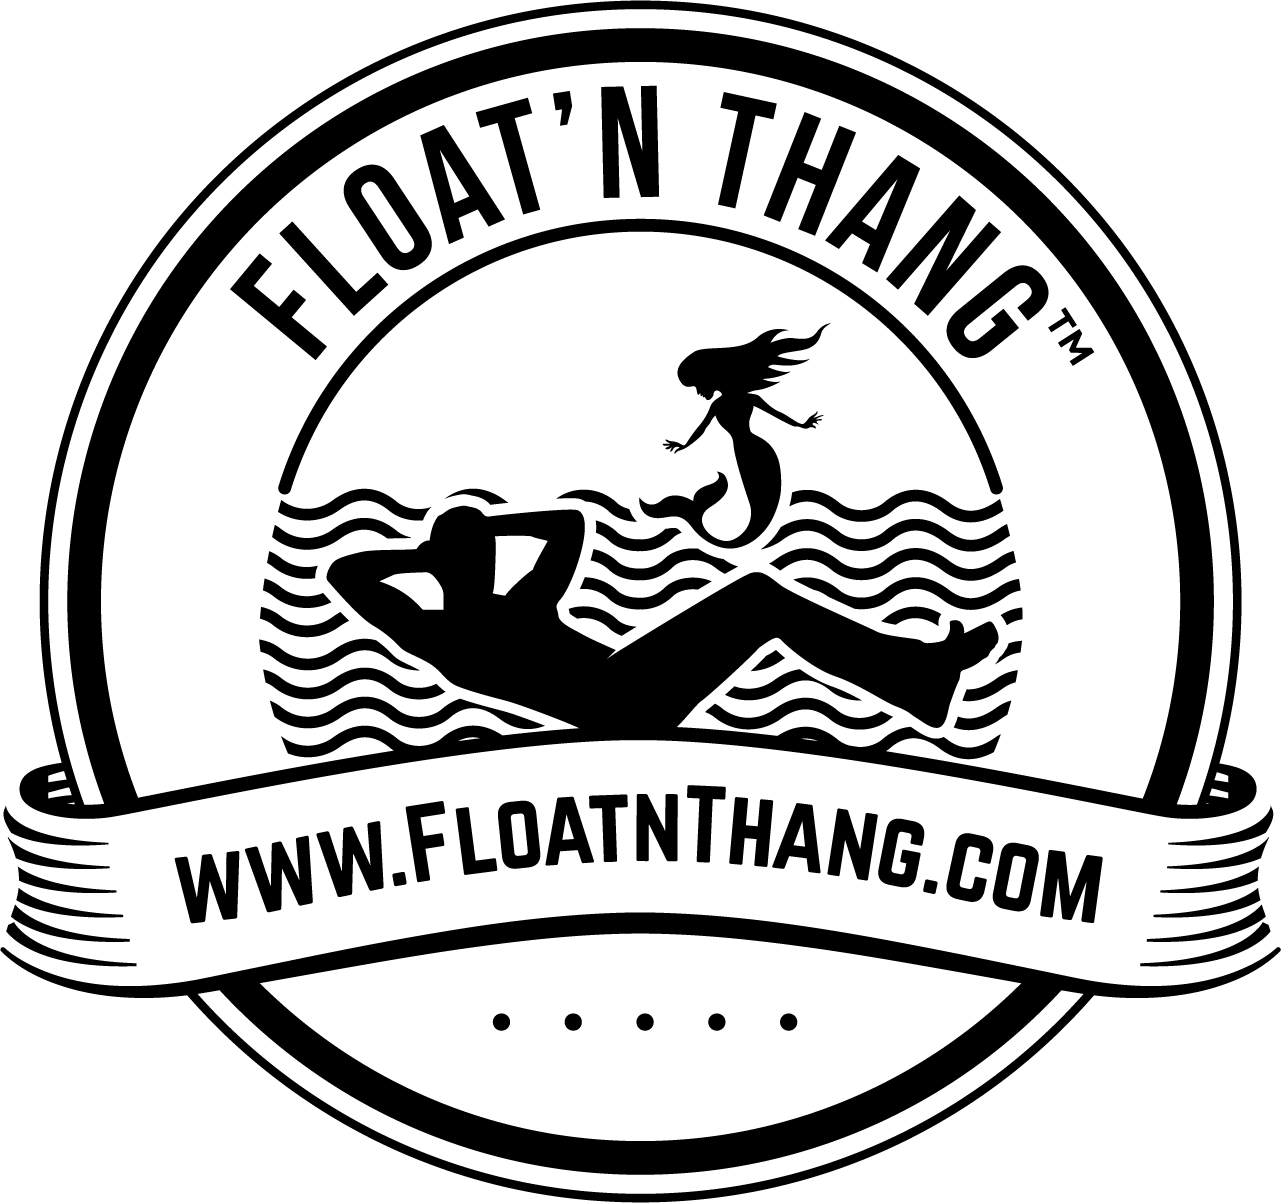 The Float'n Thang by Sunshine Innovations LLC